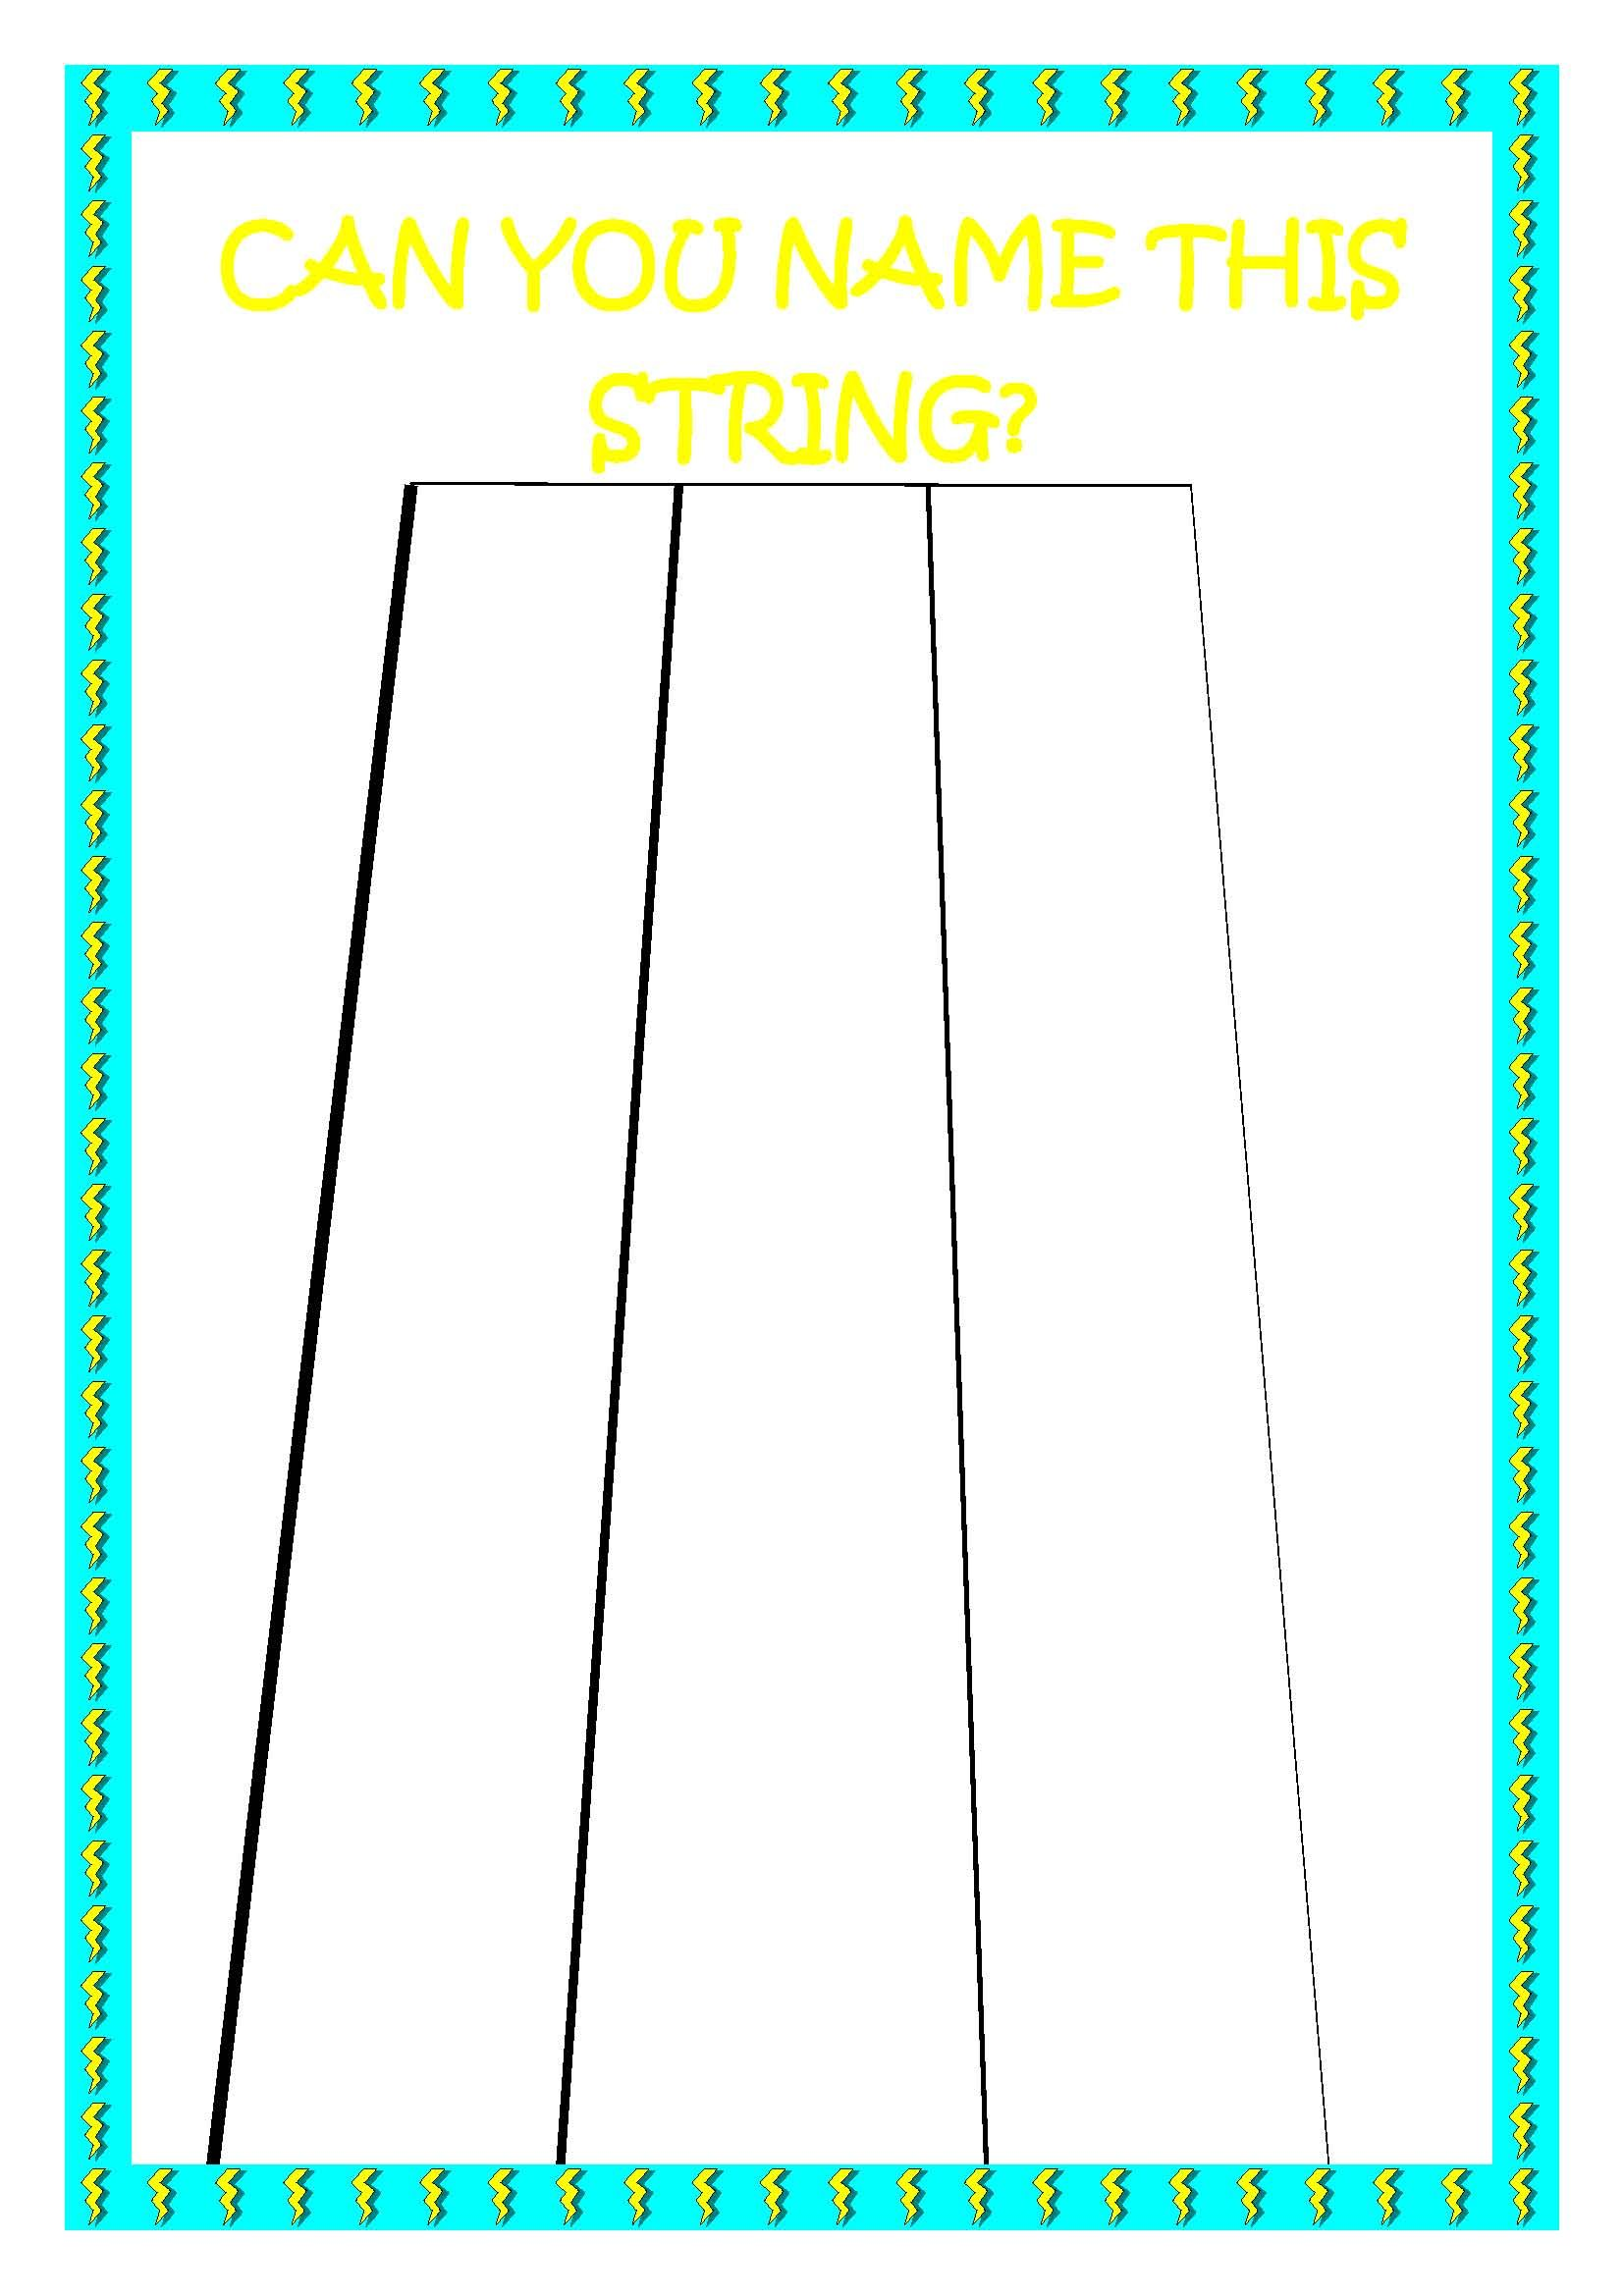 Can You Name This String Game